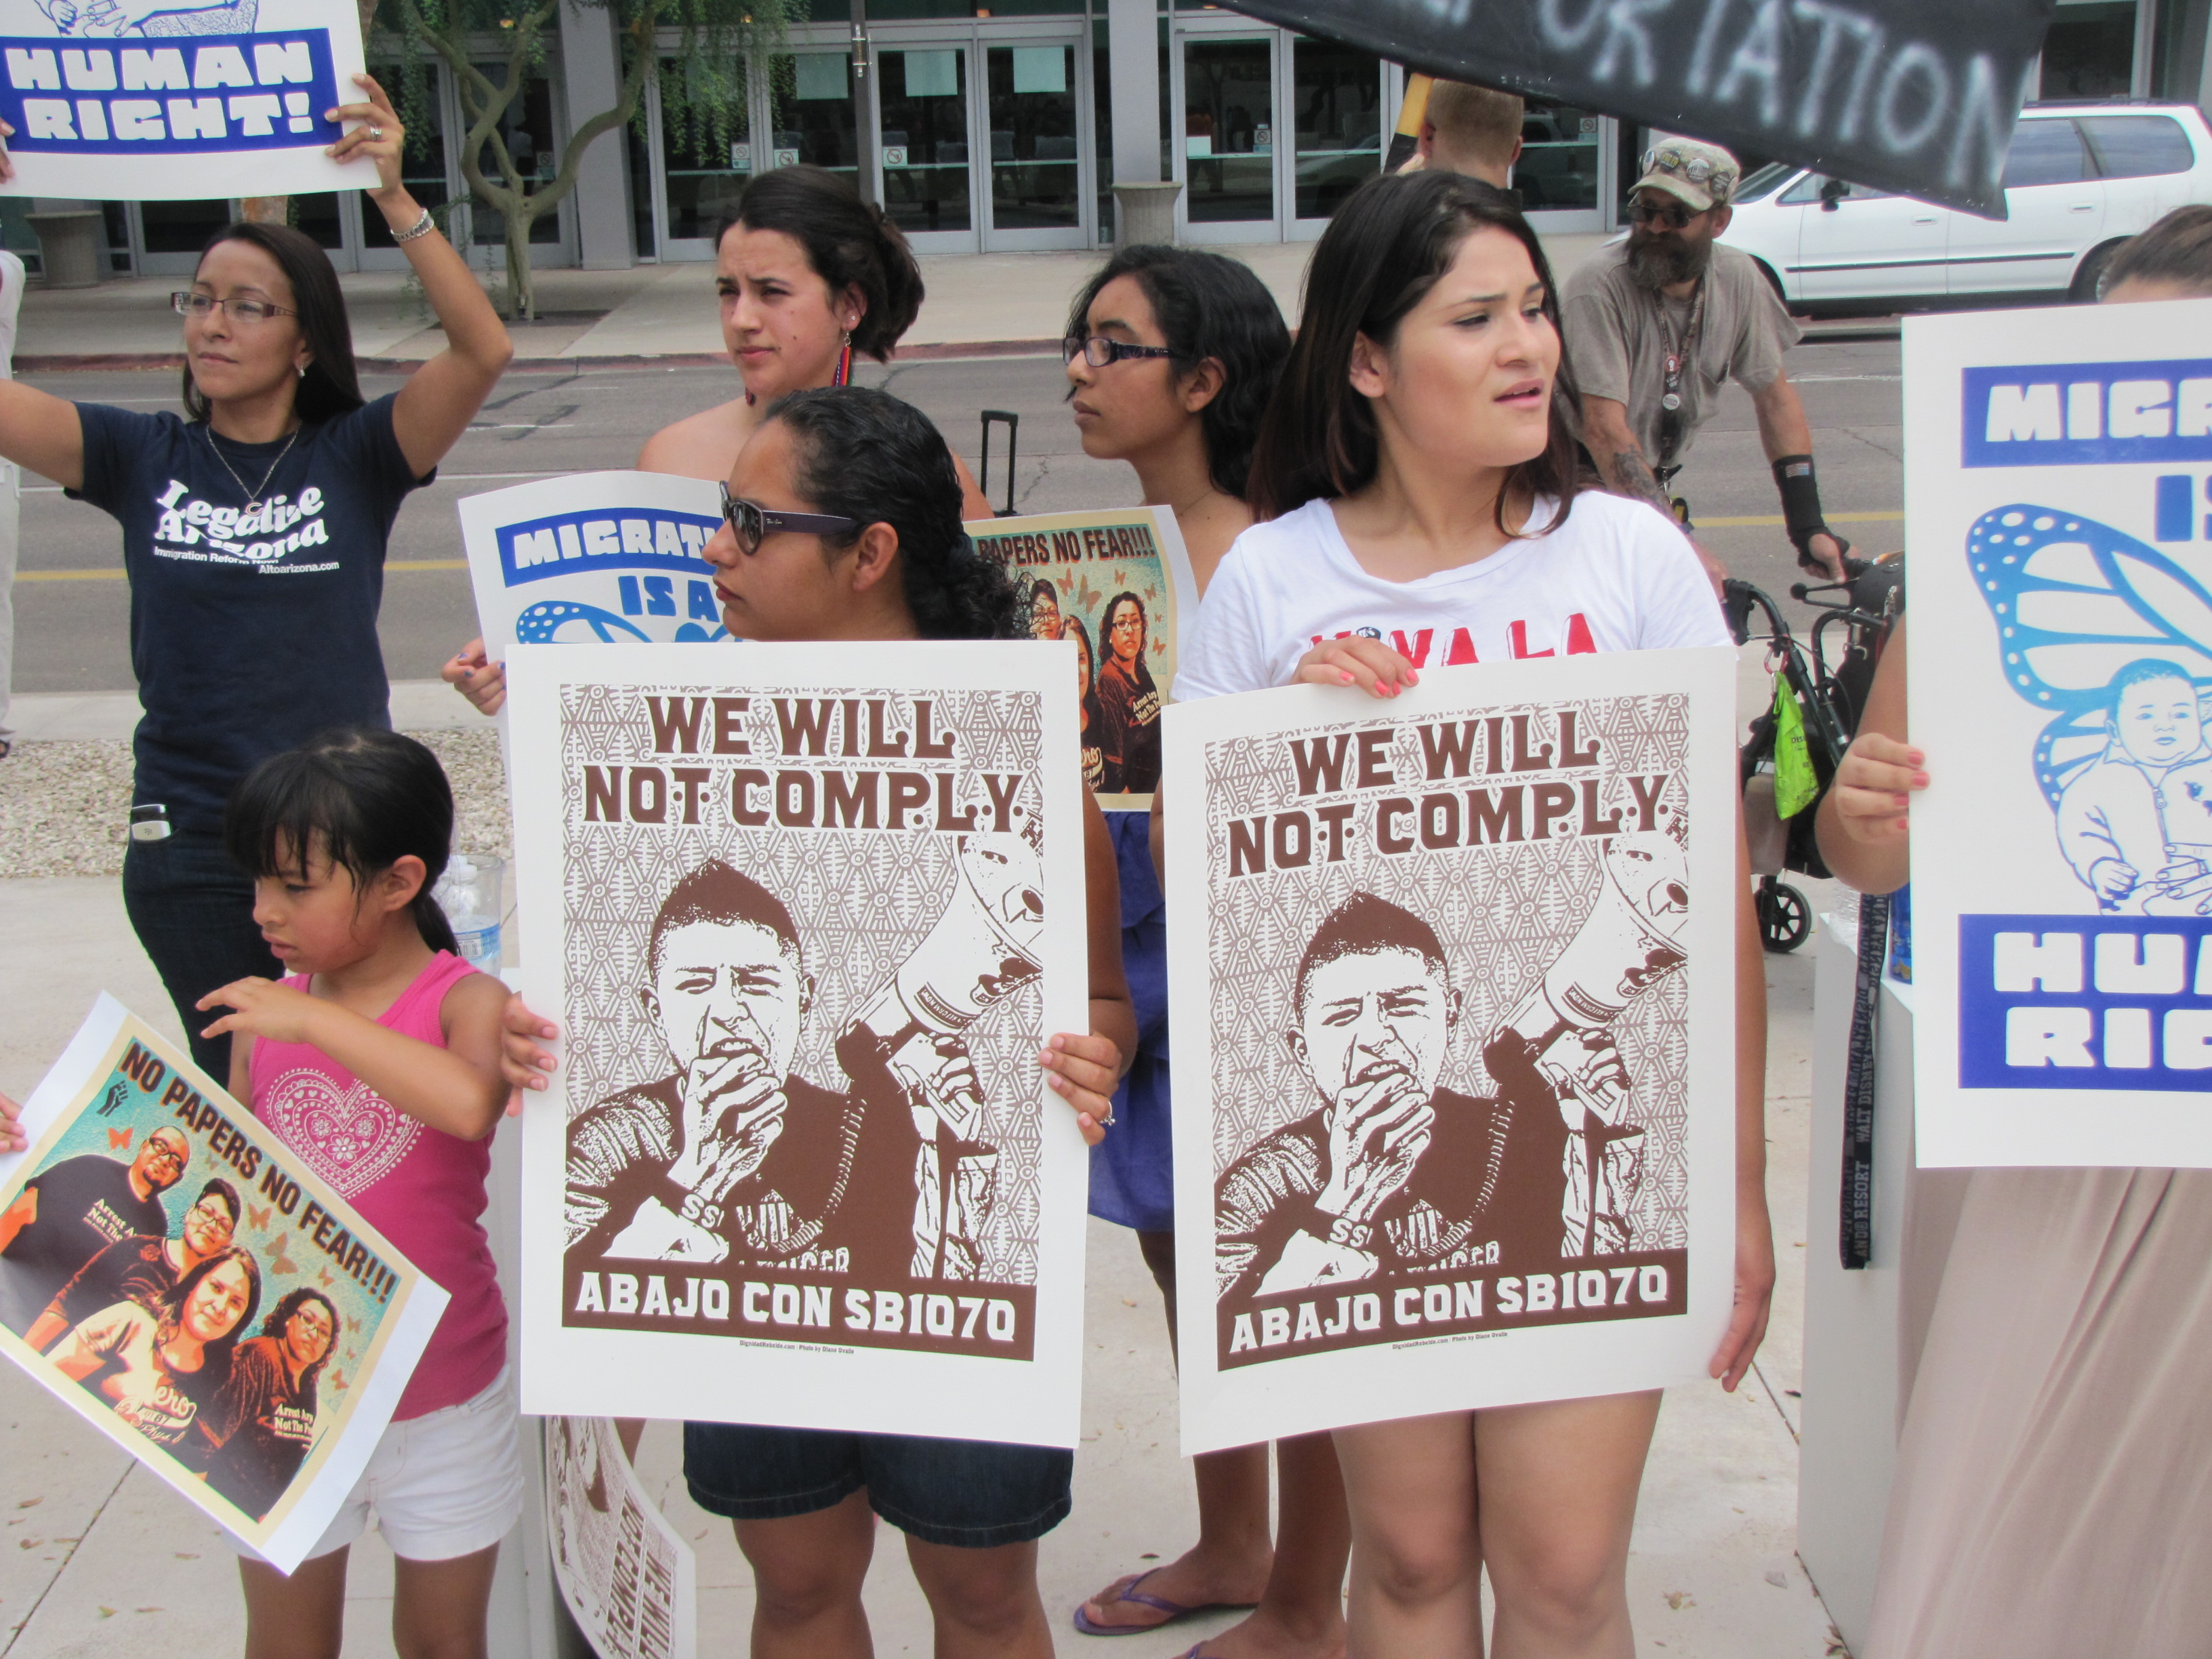 SB 1070 protesters gather outside the federal courthouse in Phoenix.